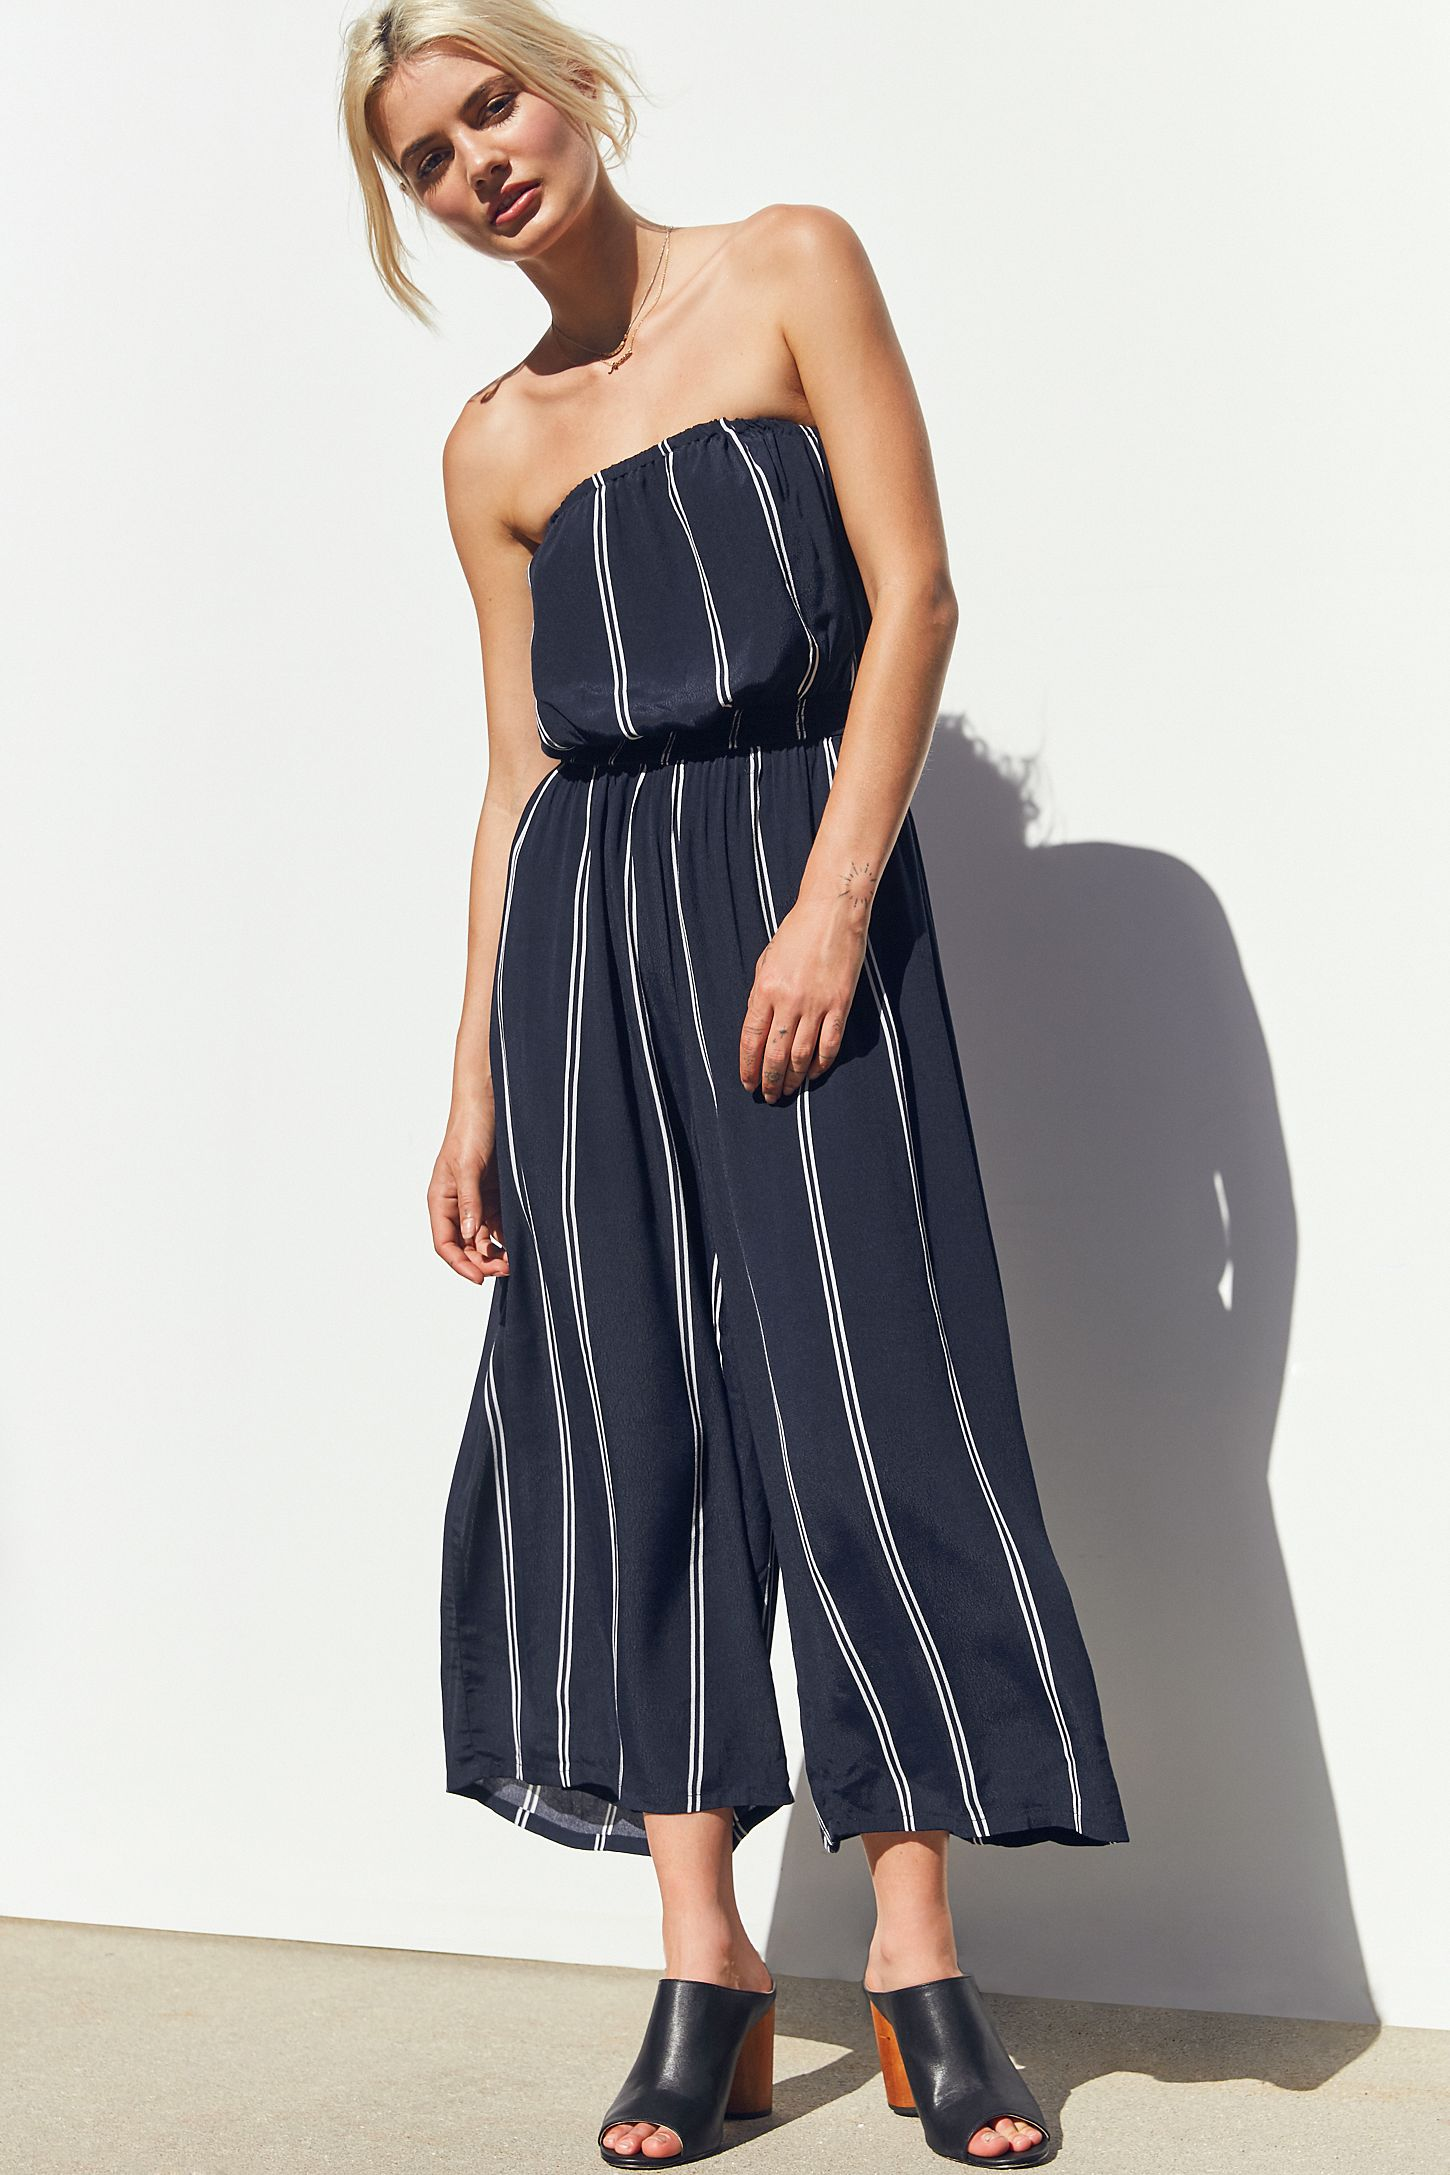 c4a87b168e45 Urban Outfitters Black And White Jumpsuit